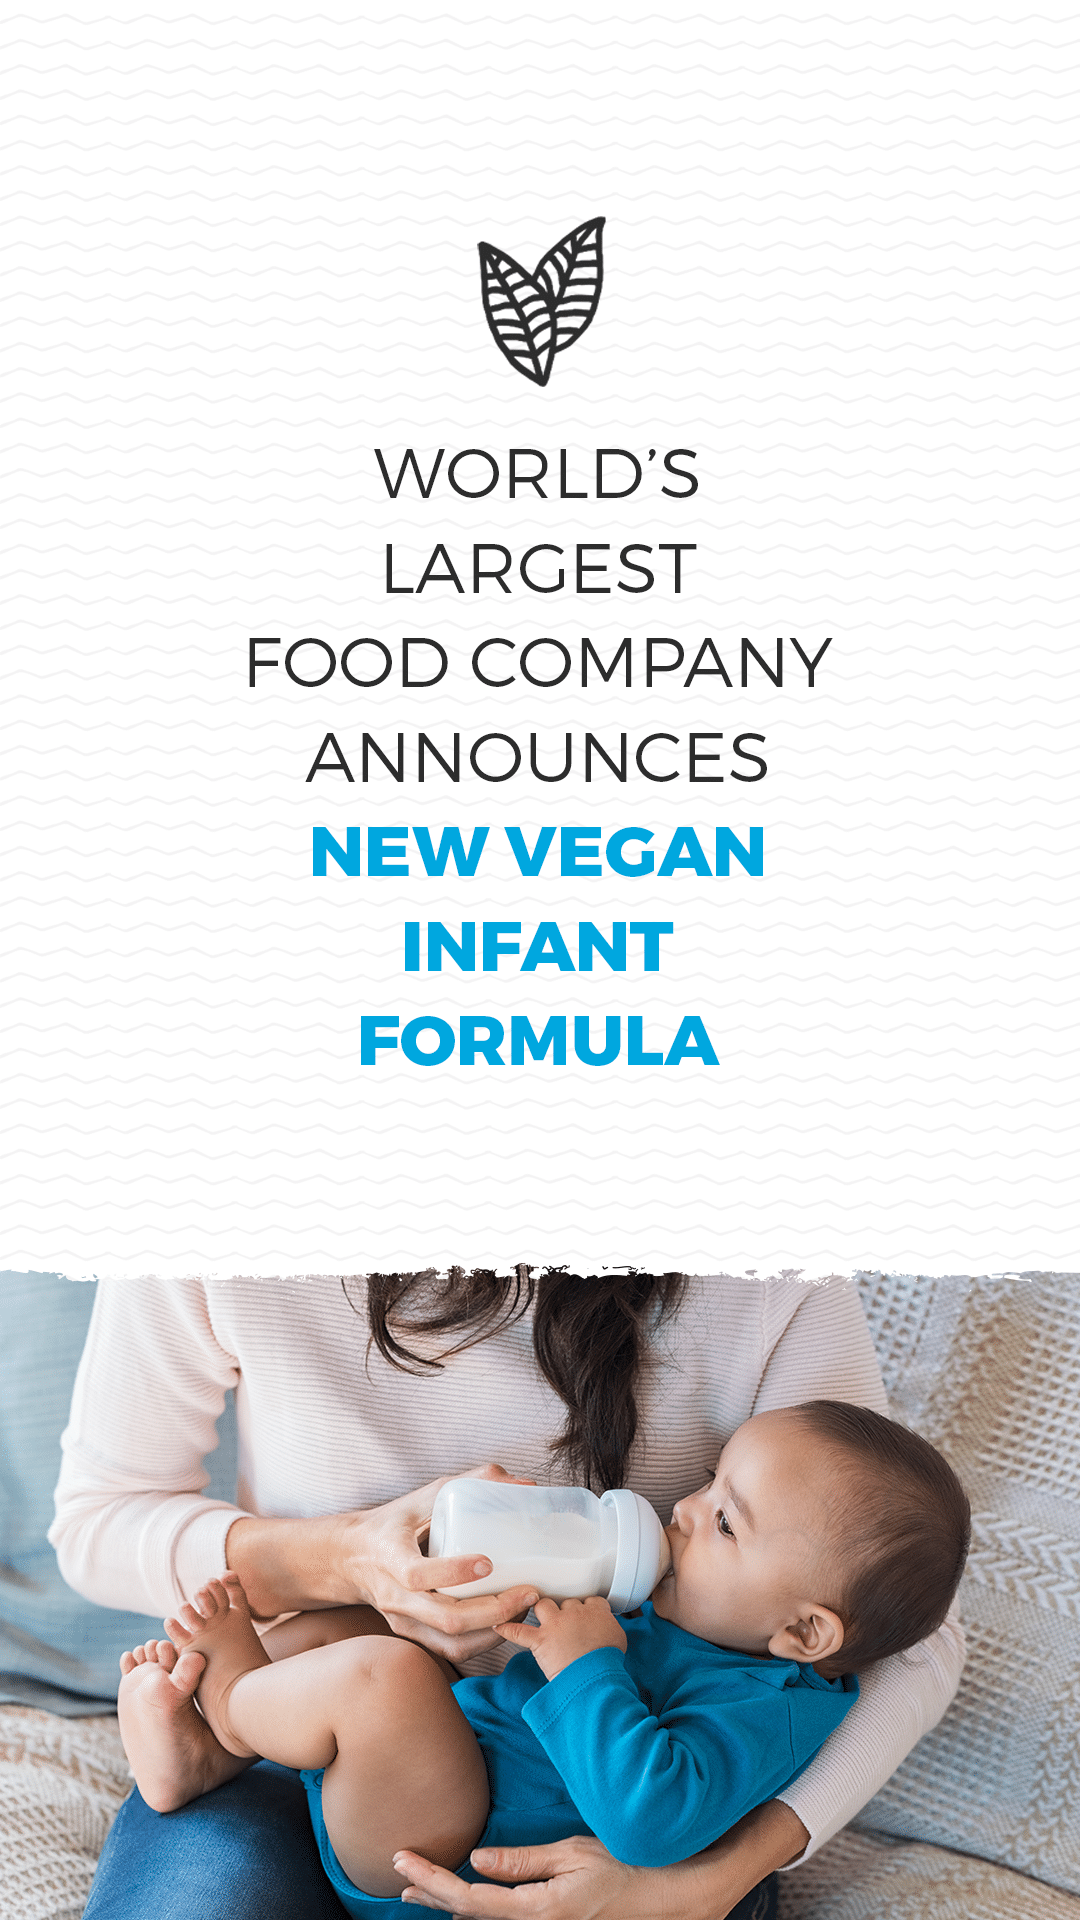 World's Largest Food Company Announces New Vegan Infant Formula